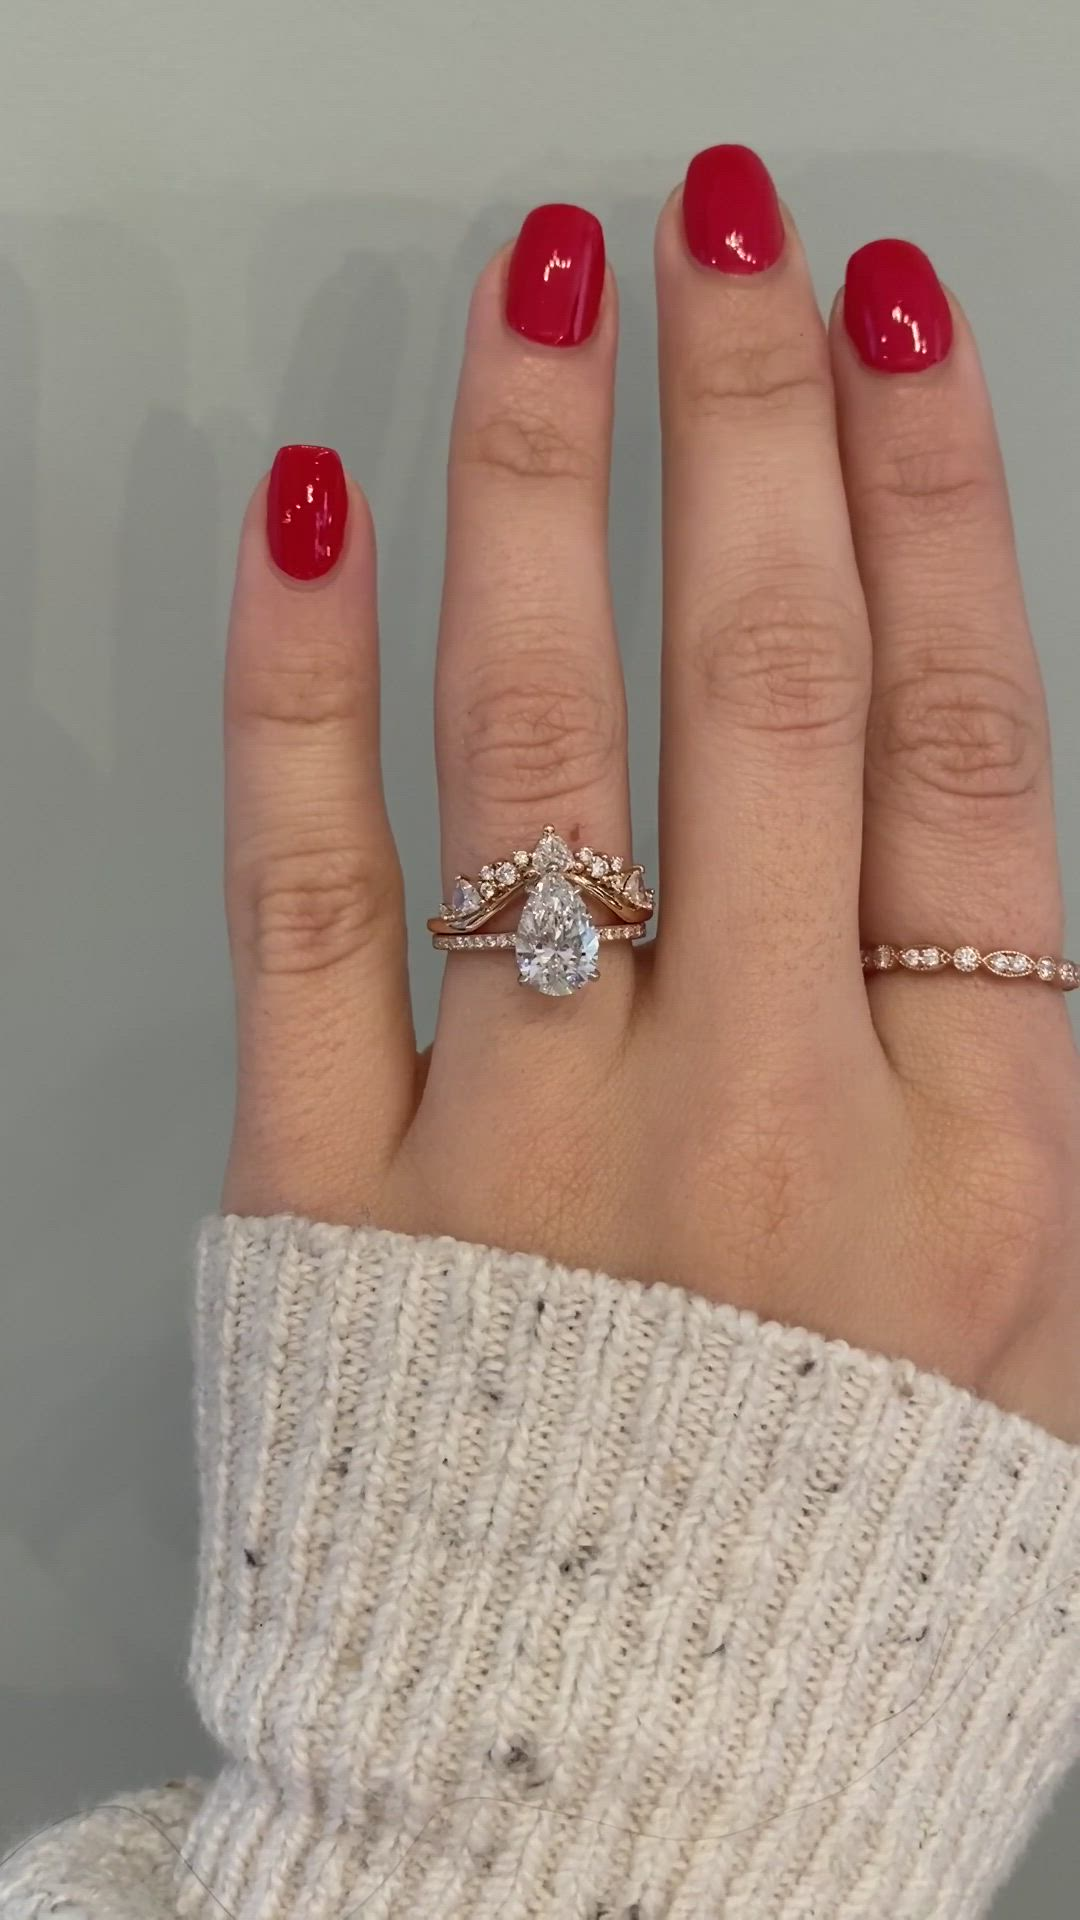 Lauren Tempest With 1 5 Carat Pear Diamond Video In 2020 Rose Gold Engagement Ring Engagement Rings Vintage Inspired Engagement Rings